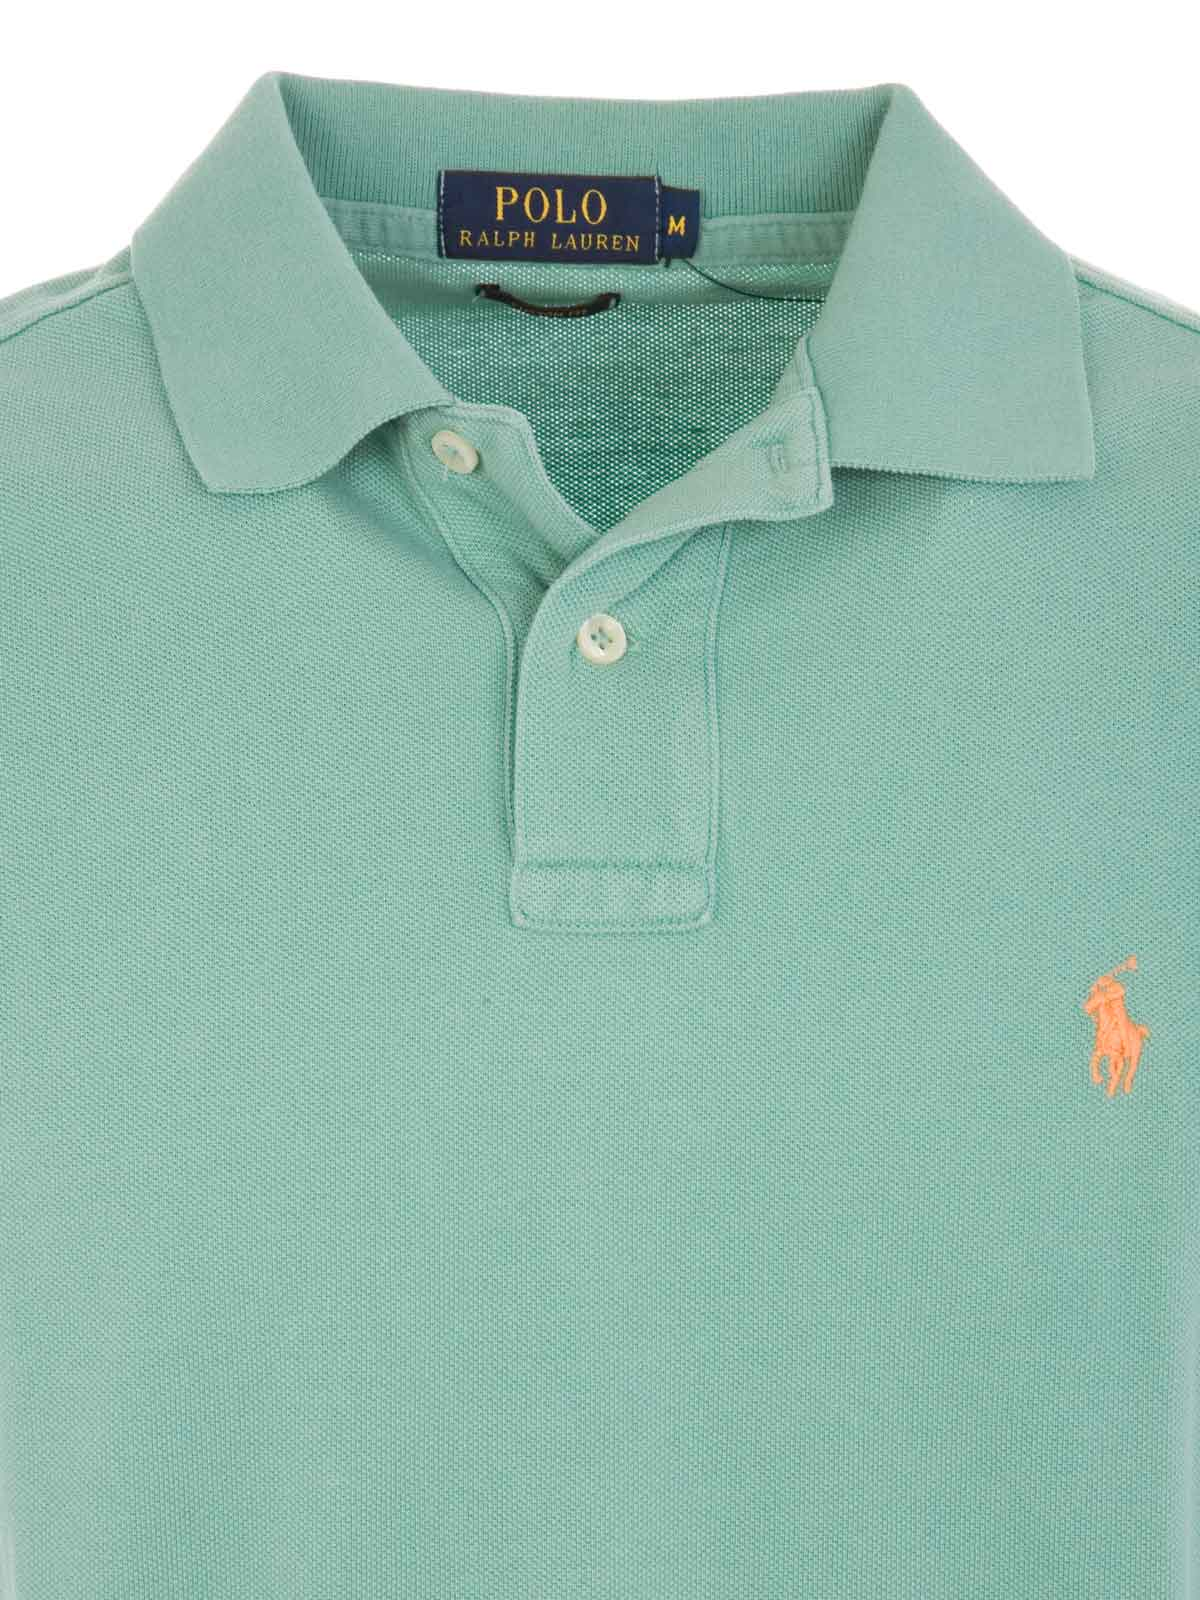 Picture of POLO RALPH LAUREN | Men's Custom Fit Polo Shirt